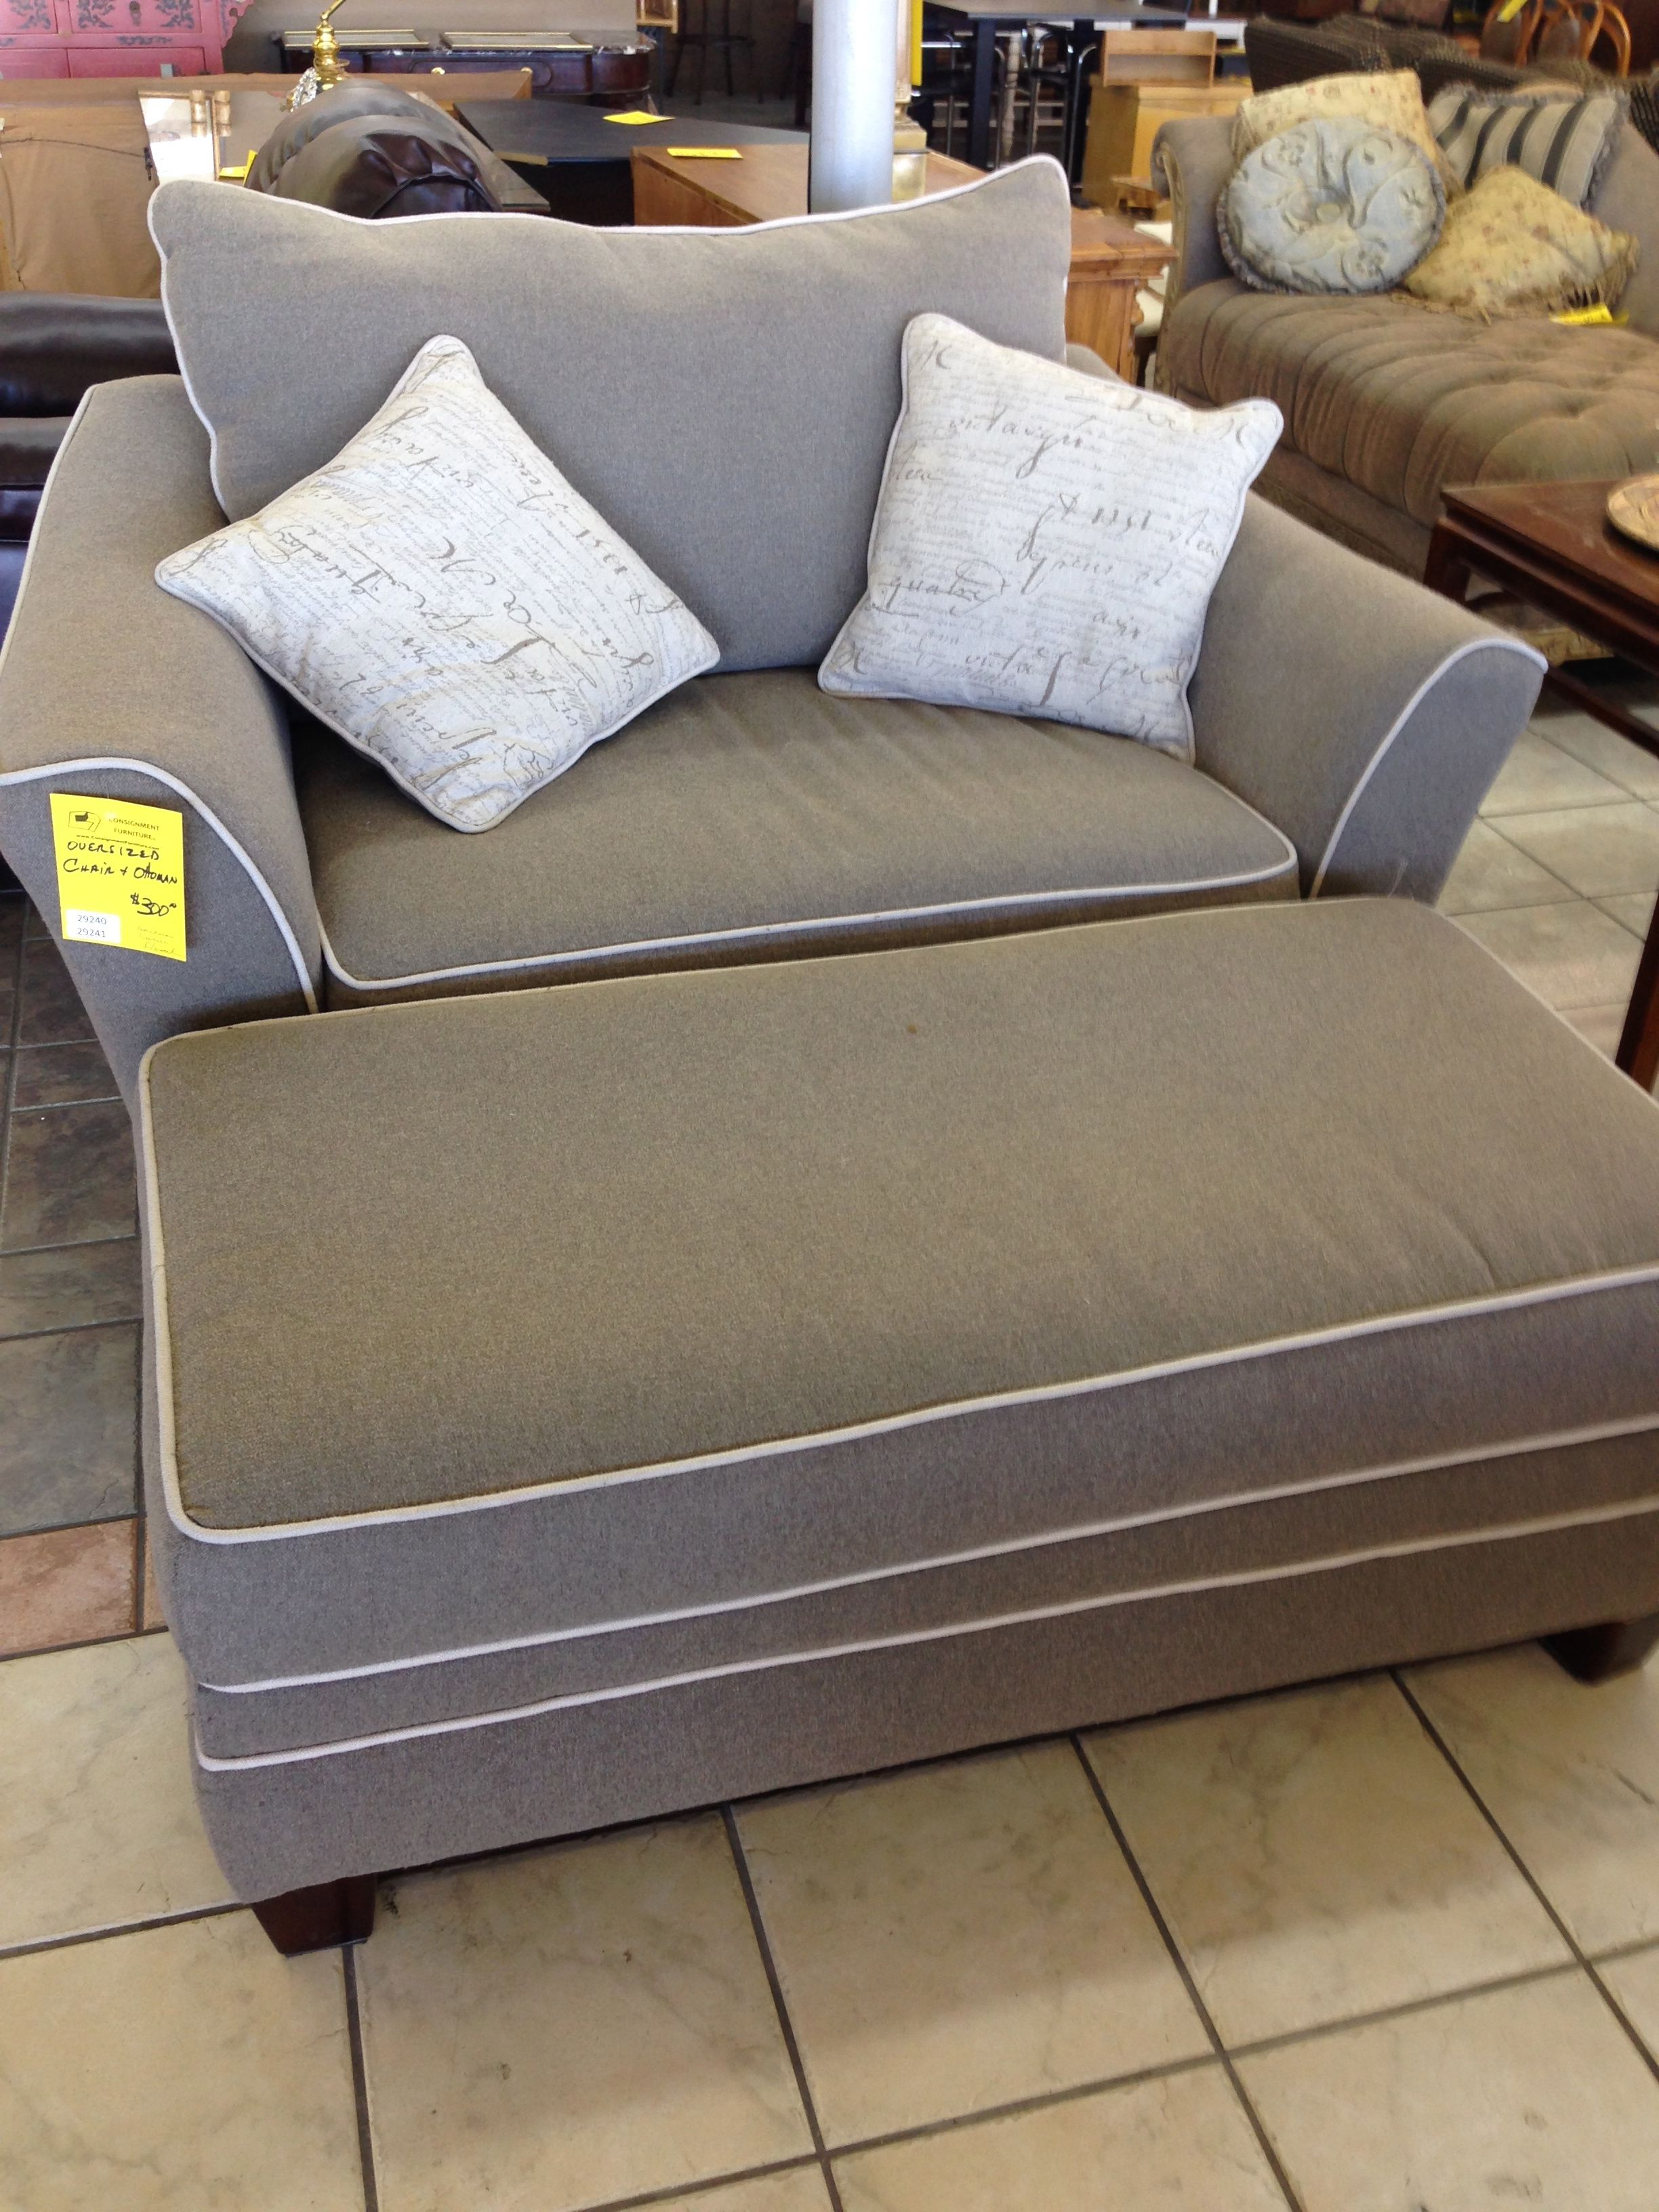 Oversized Chair And Ottoman Set Stylish Grey Fabric Oversized Chairs With Rectangle Ottoman In